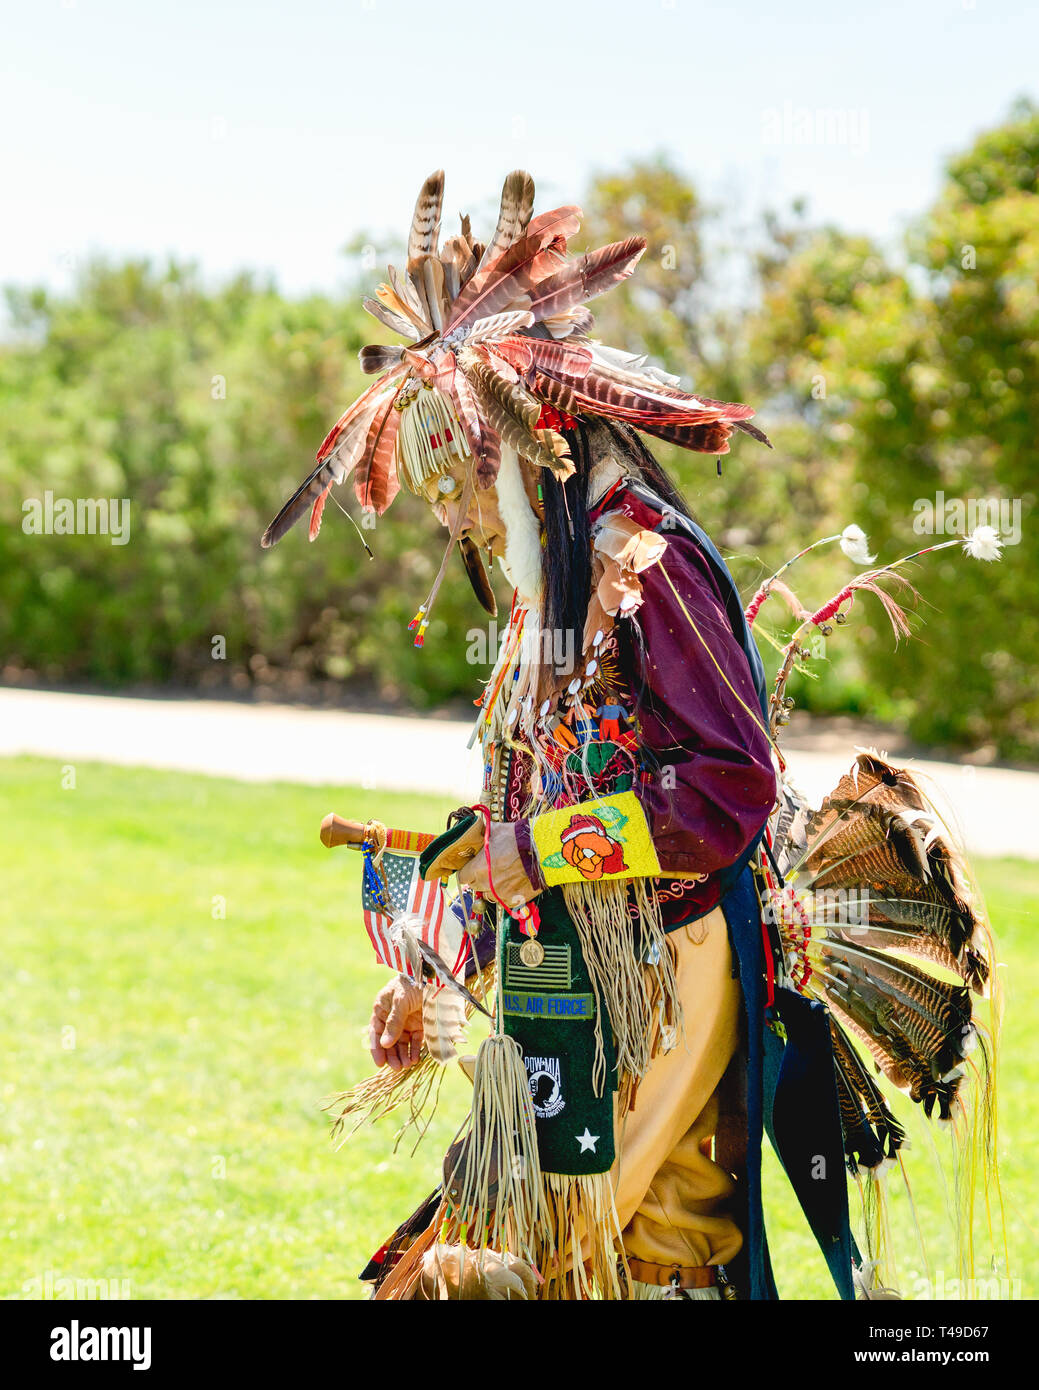 Mature man in full Native American regalia. 2019 21st Annual Chumash Day Powwow and Intertribal Gathering, Malibu, California, April 13, 2019 - Stock Image